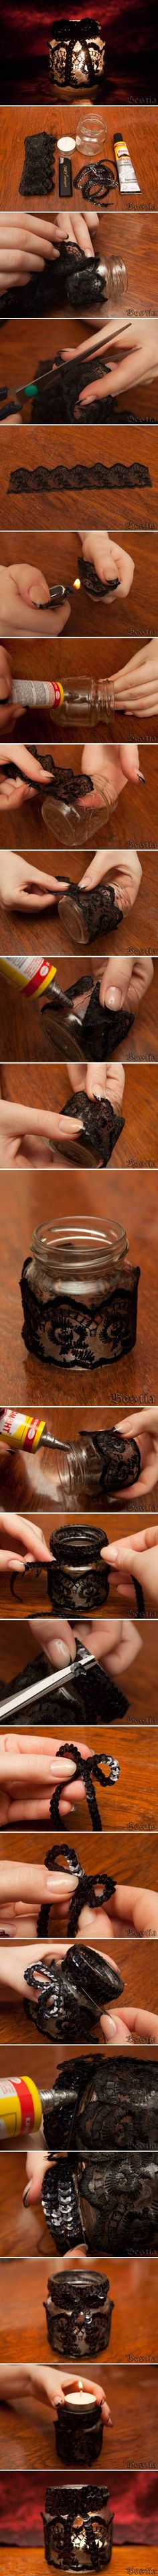 DIY Small Glass Candle Holder